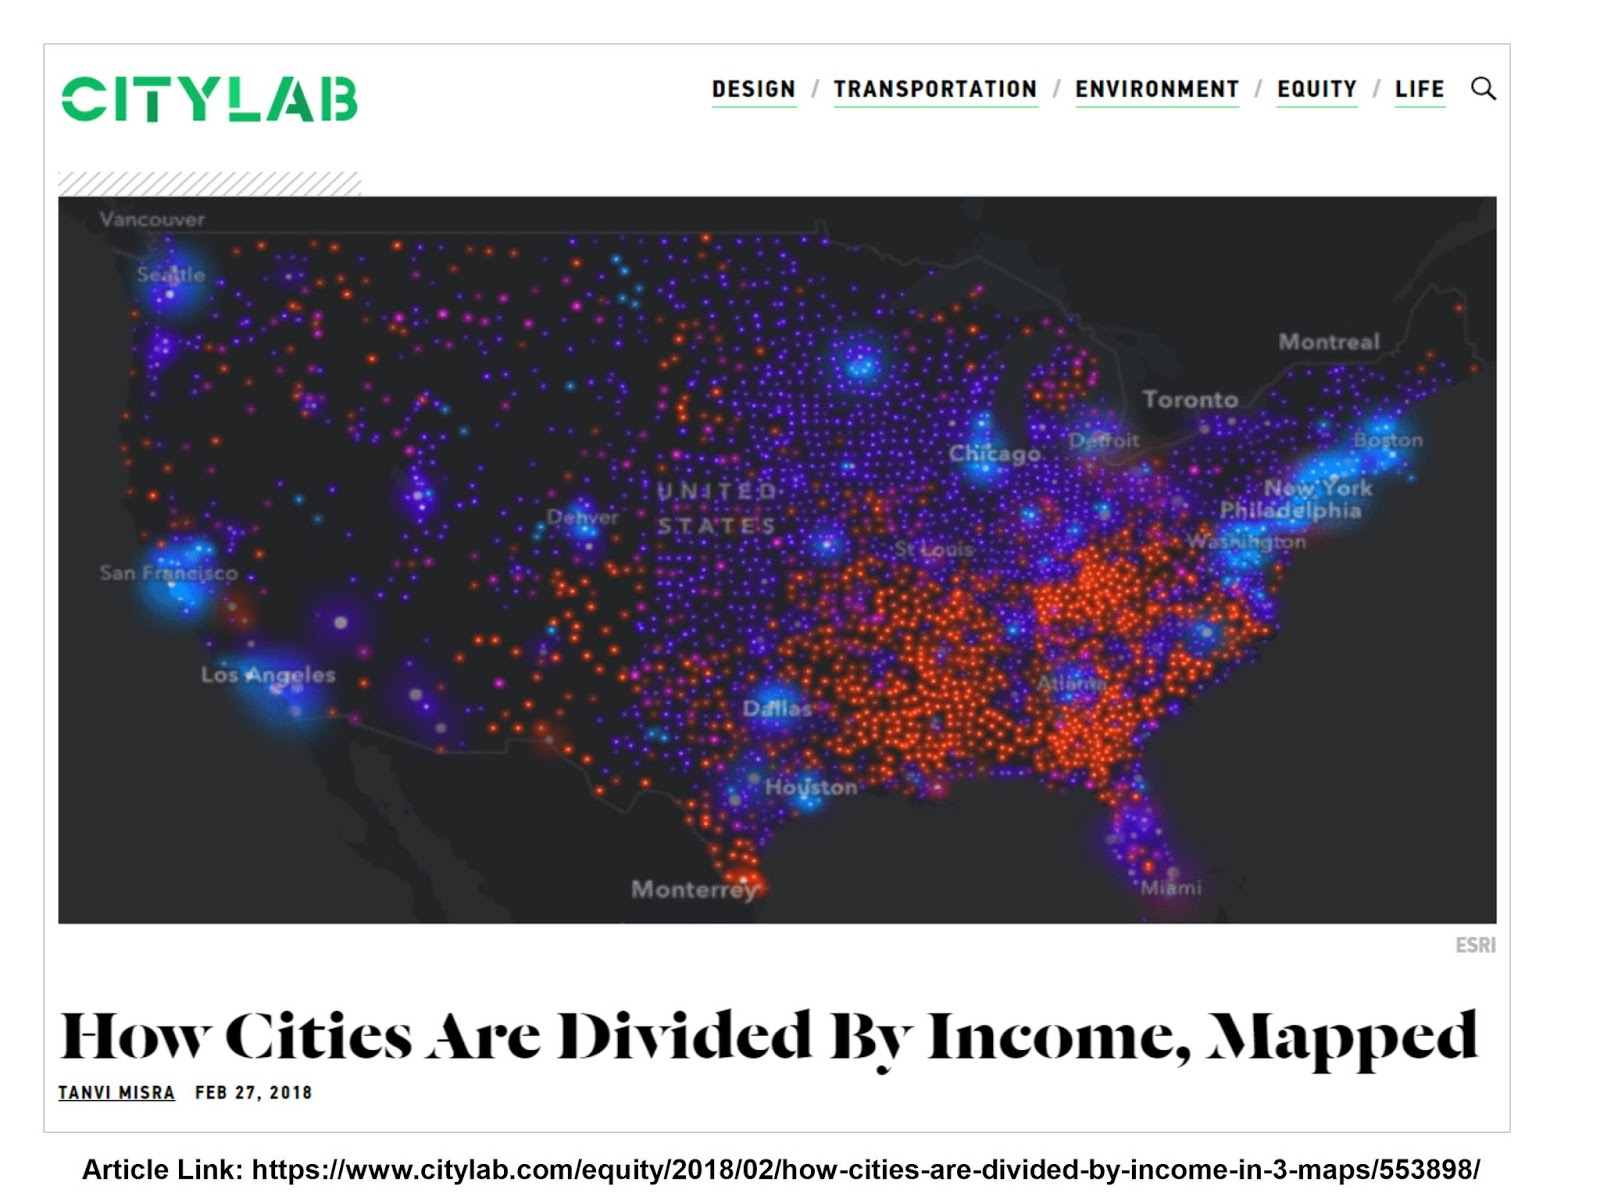 mapping income levels and population changes